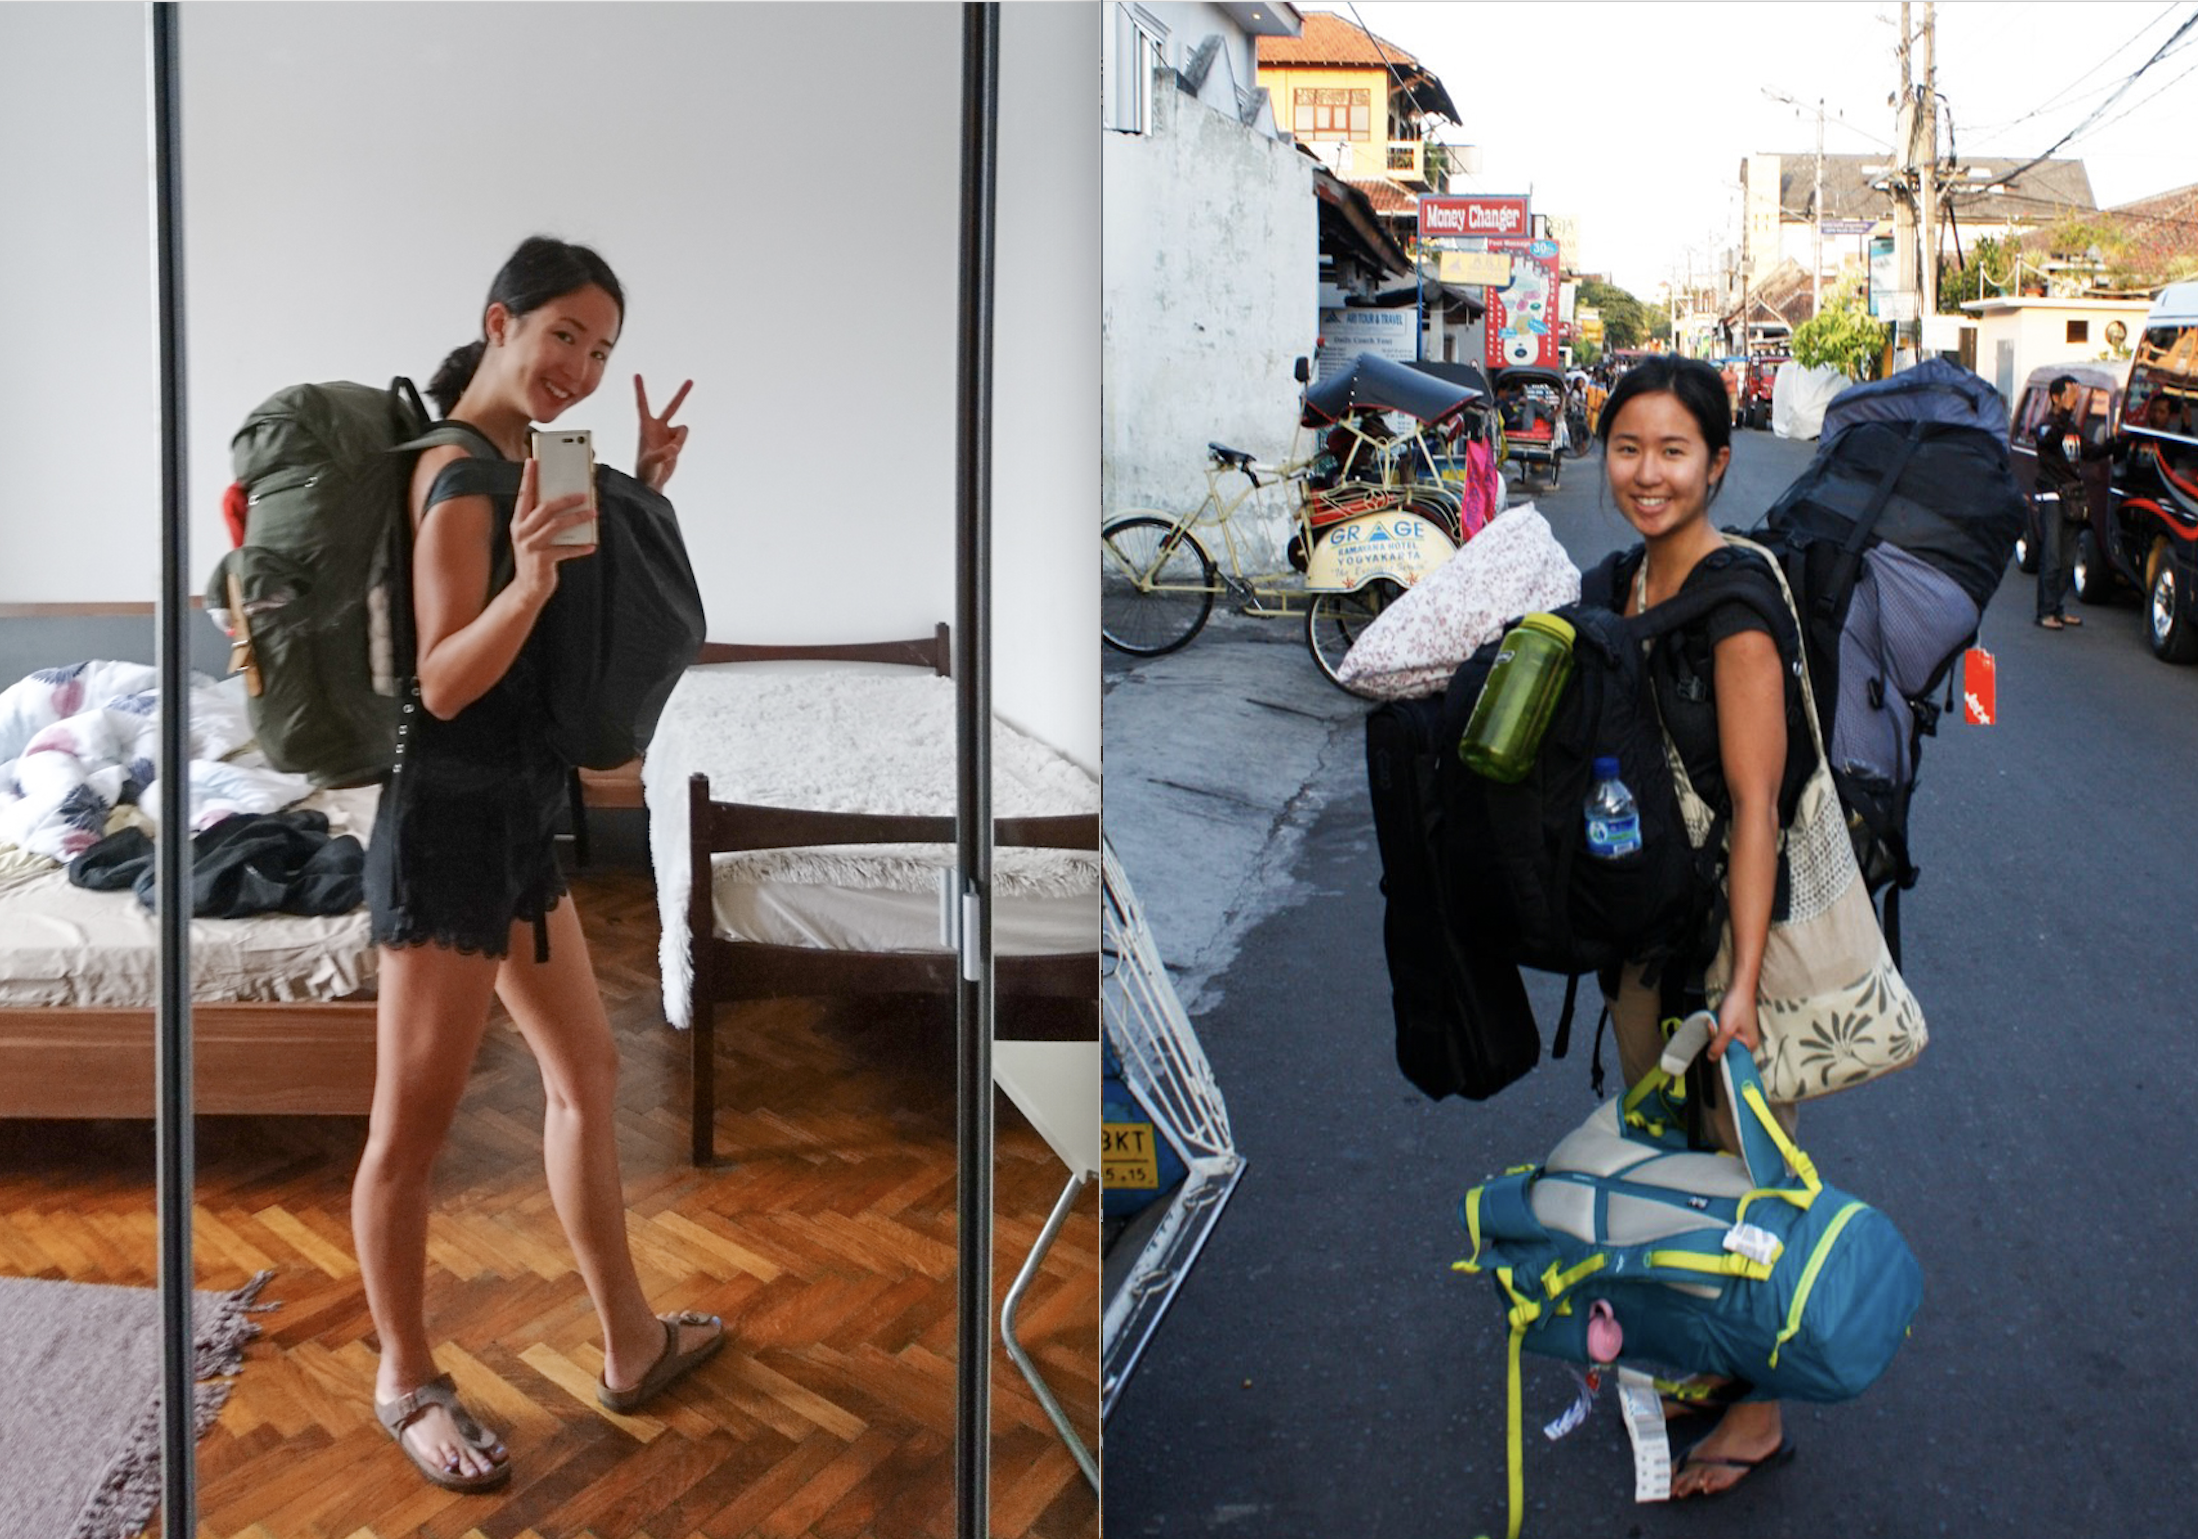 I've also gotten better at packing light through the years. On the left is all the luggage I brought with me for a month to Eastern Europe. On the right is all the luggage I brought with me to Indonesia in 2012.